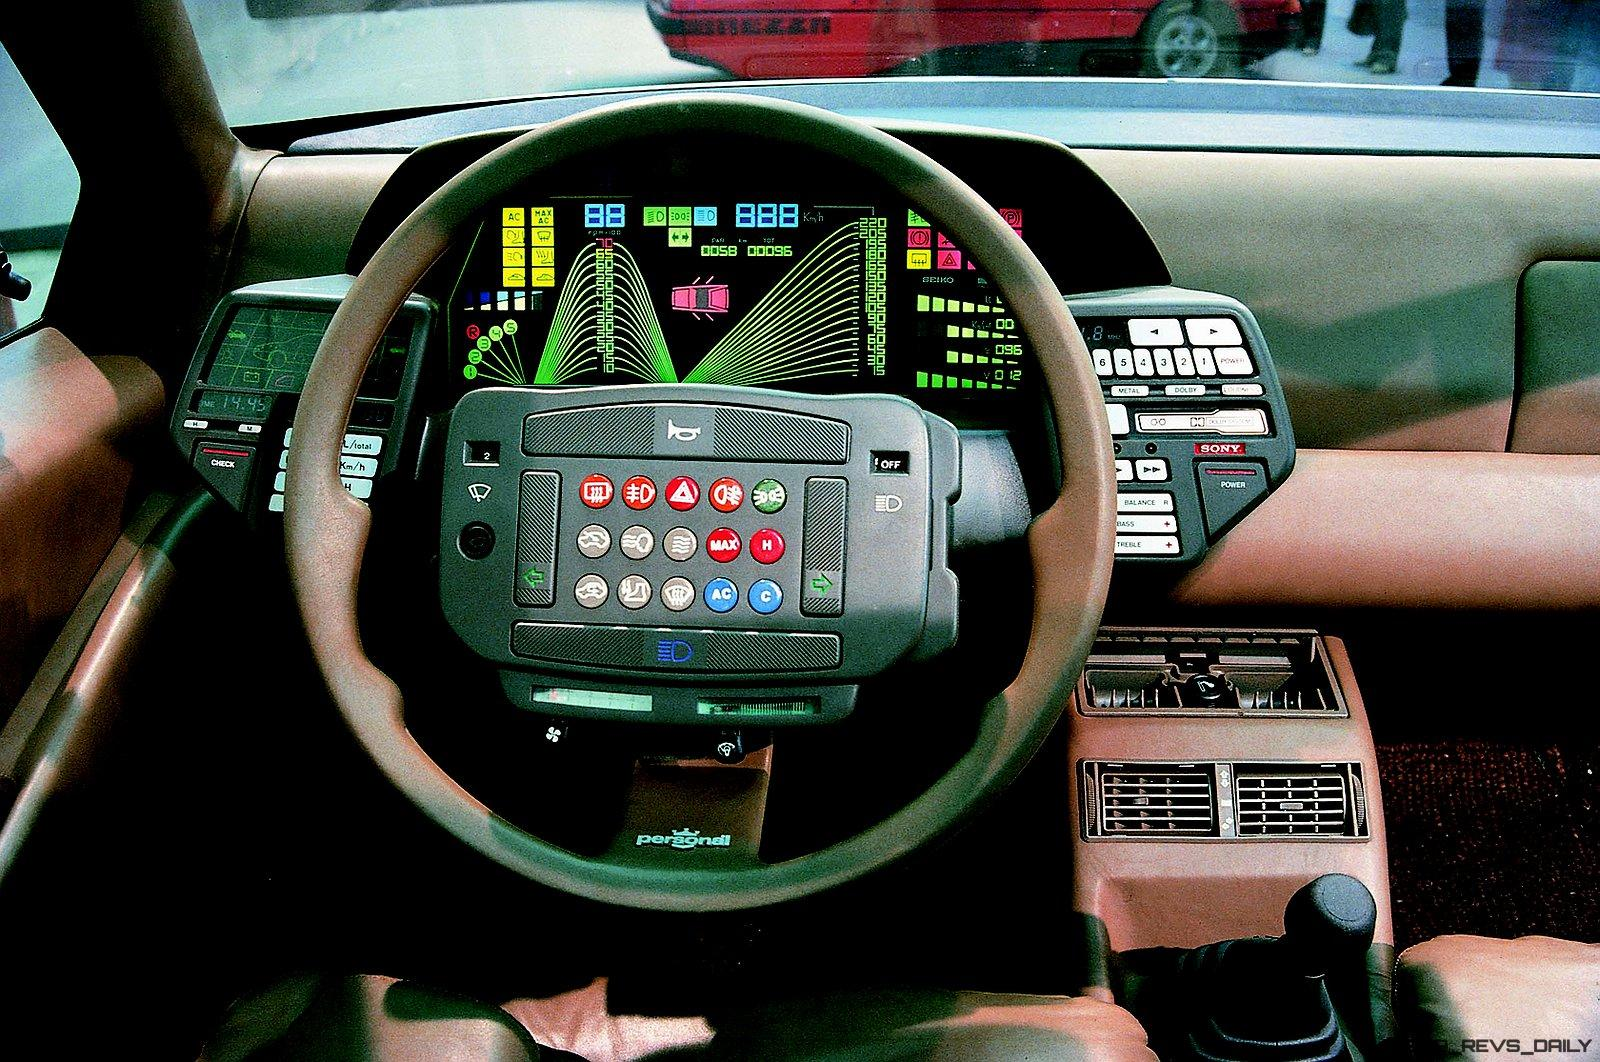 7 Of The Craziest Looking Dashboards And Interiors By